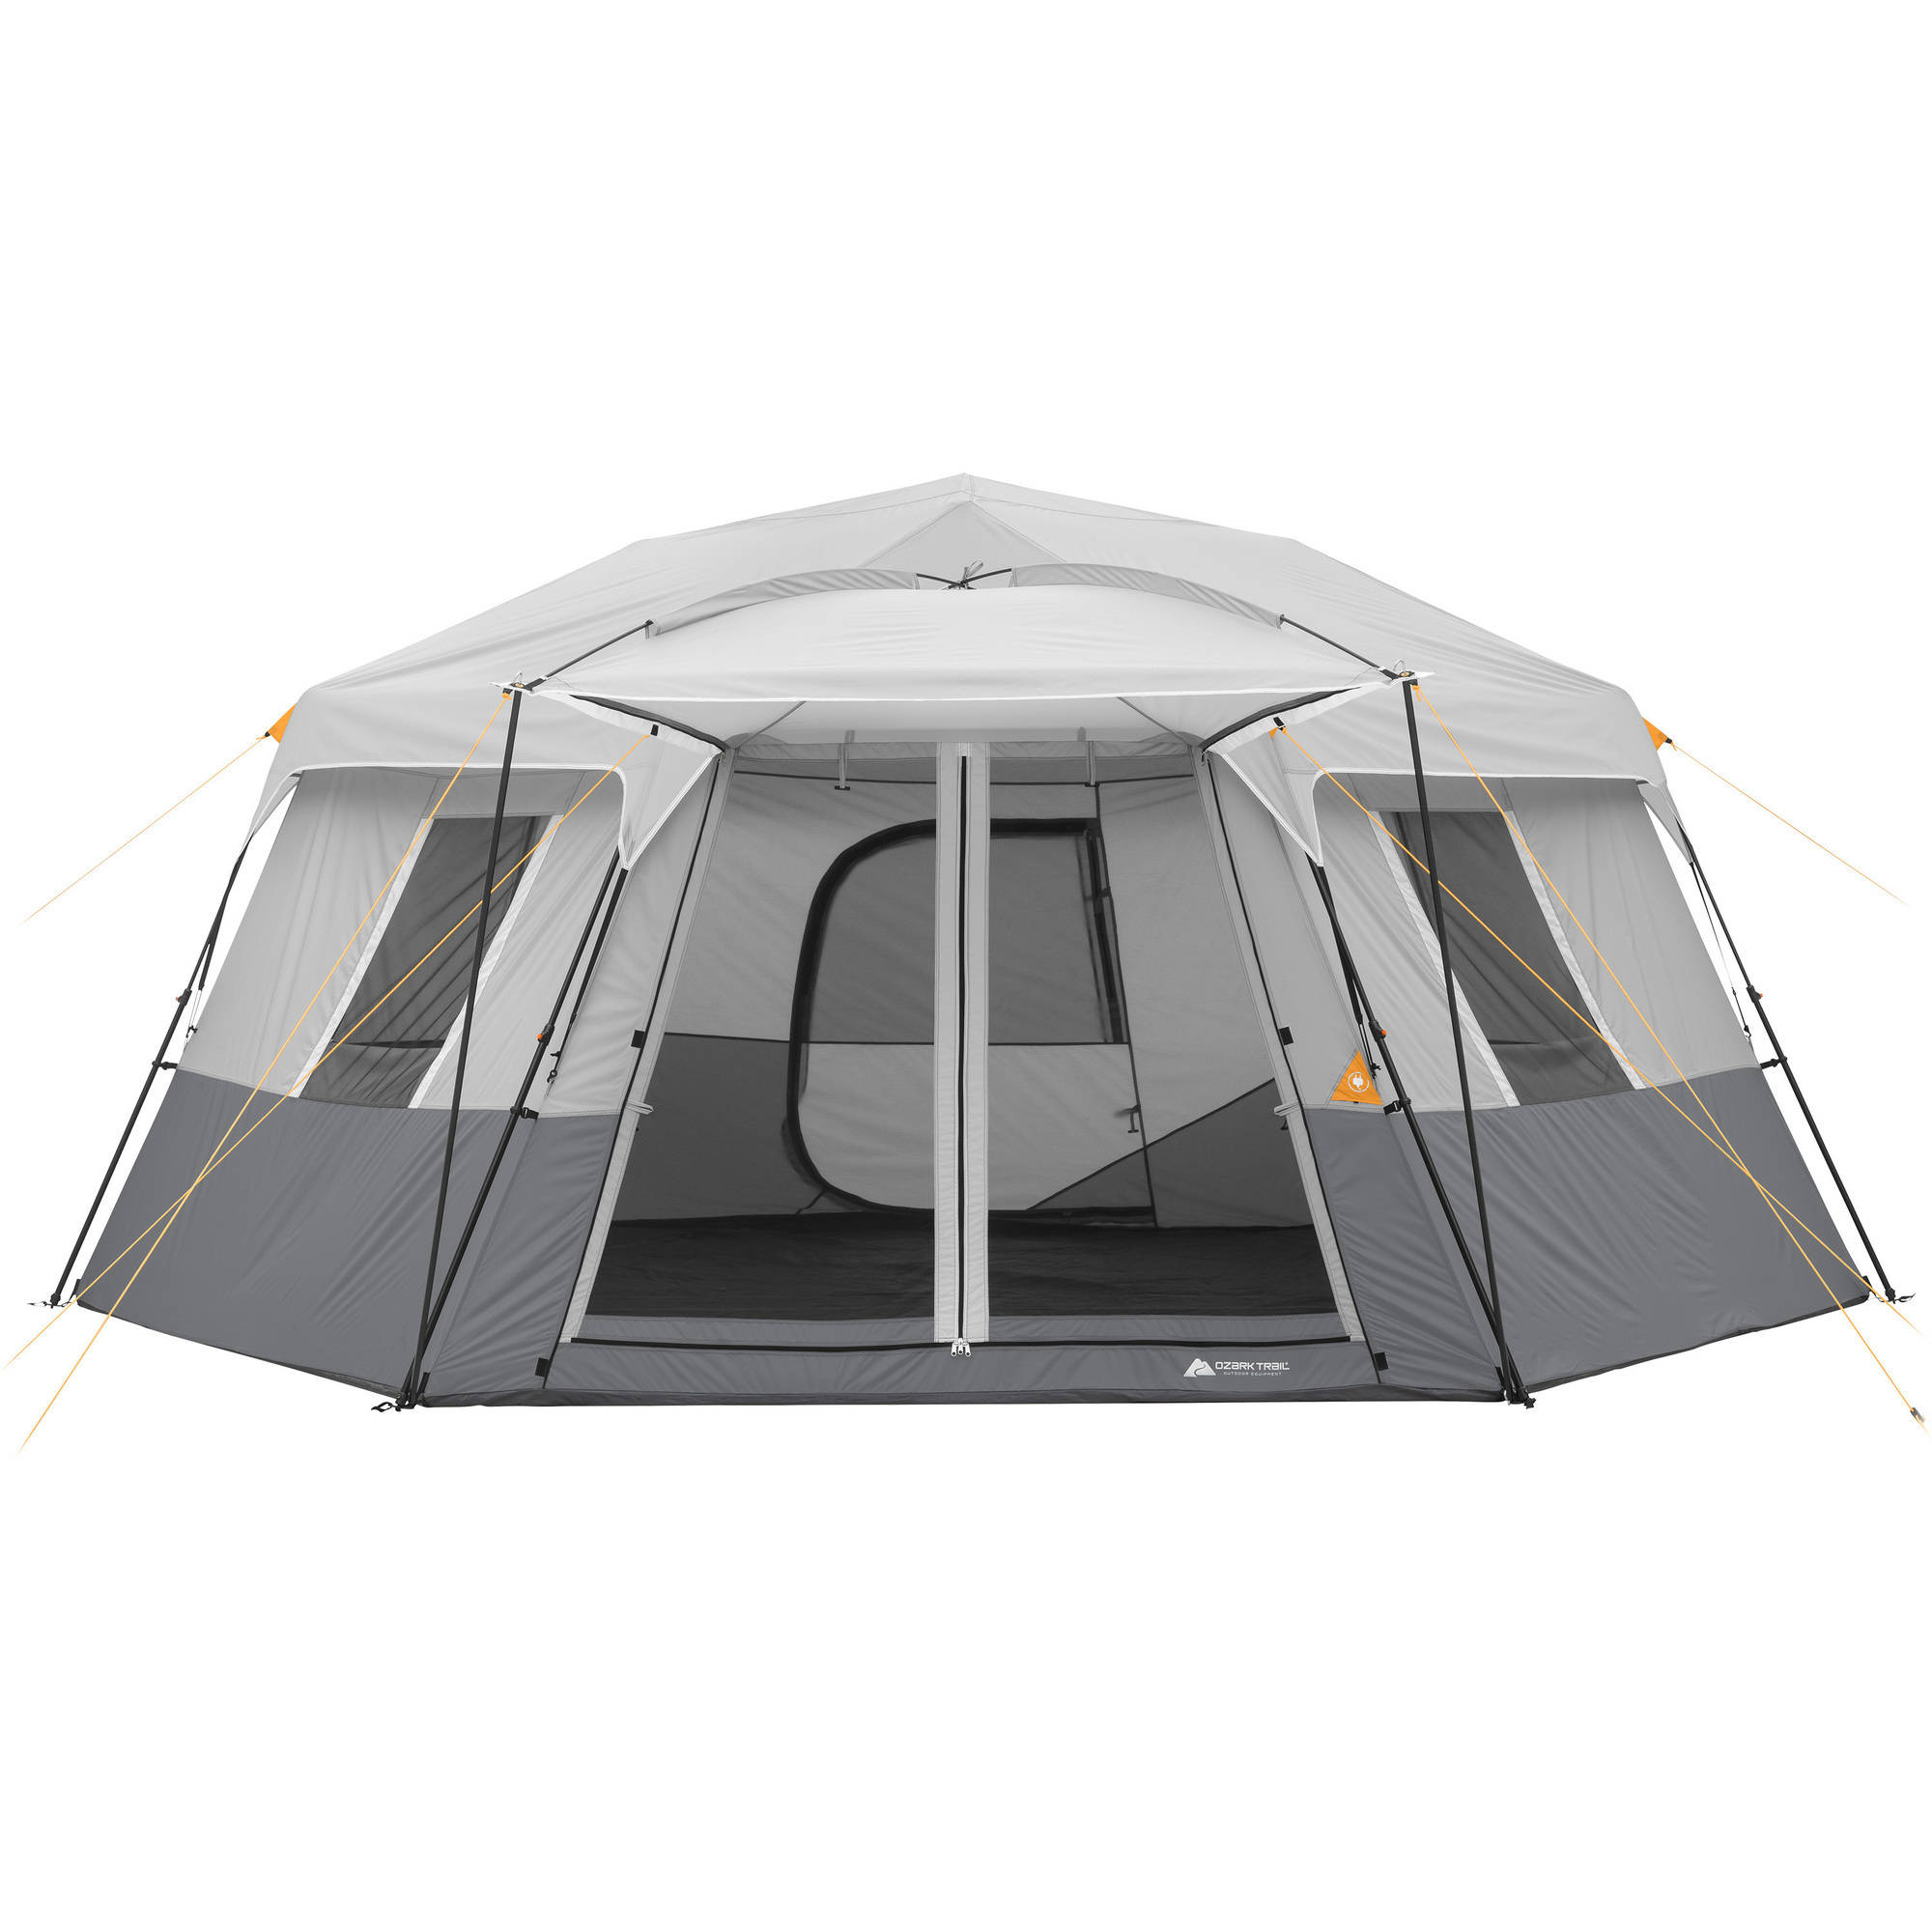 Ozark Trail 17' x 15' Person Instant Hexagon Cabin Tent, Sleeps 11